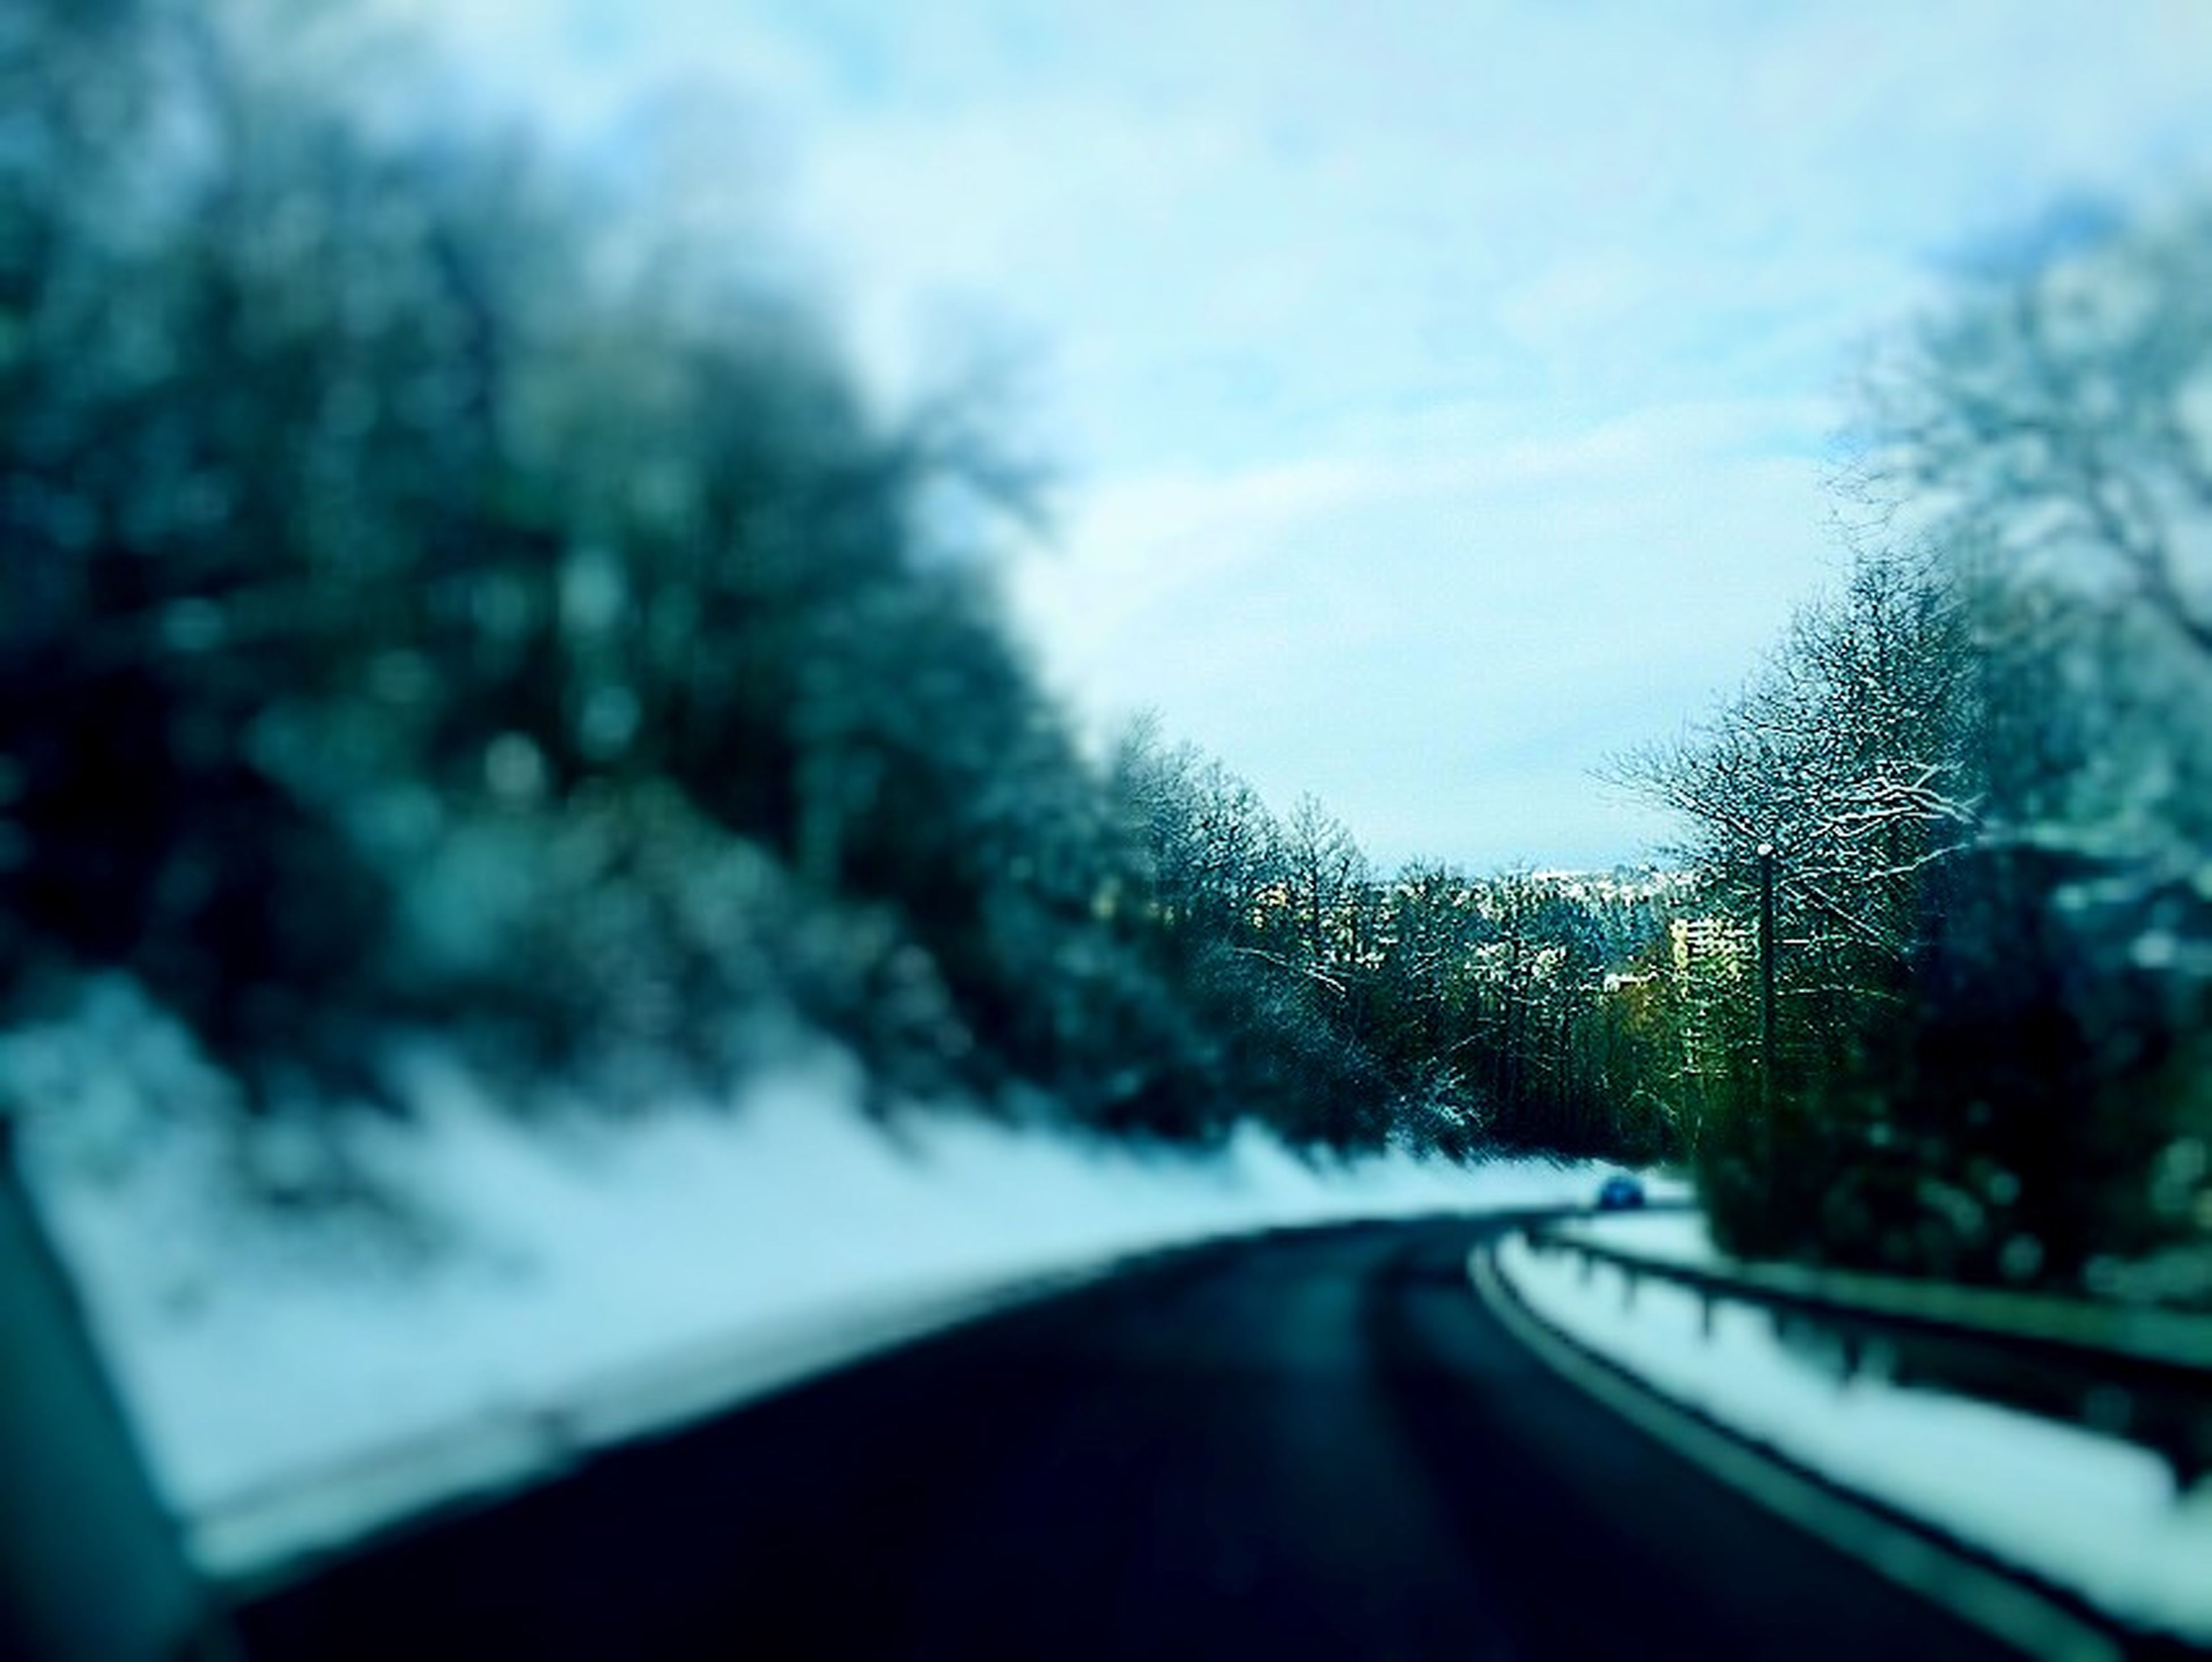 transportation, road, tree, sky, the way forward, diminishing perspective, nature, weather, vanishing point, road marking, car, cloud - sky, beauty in nature, windshield, no people, growth, outdoors, street, glass - material, transparent